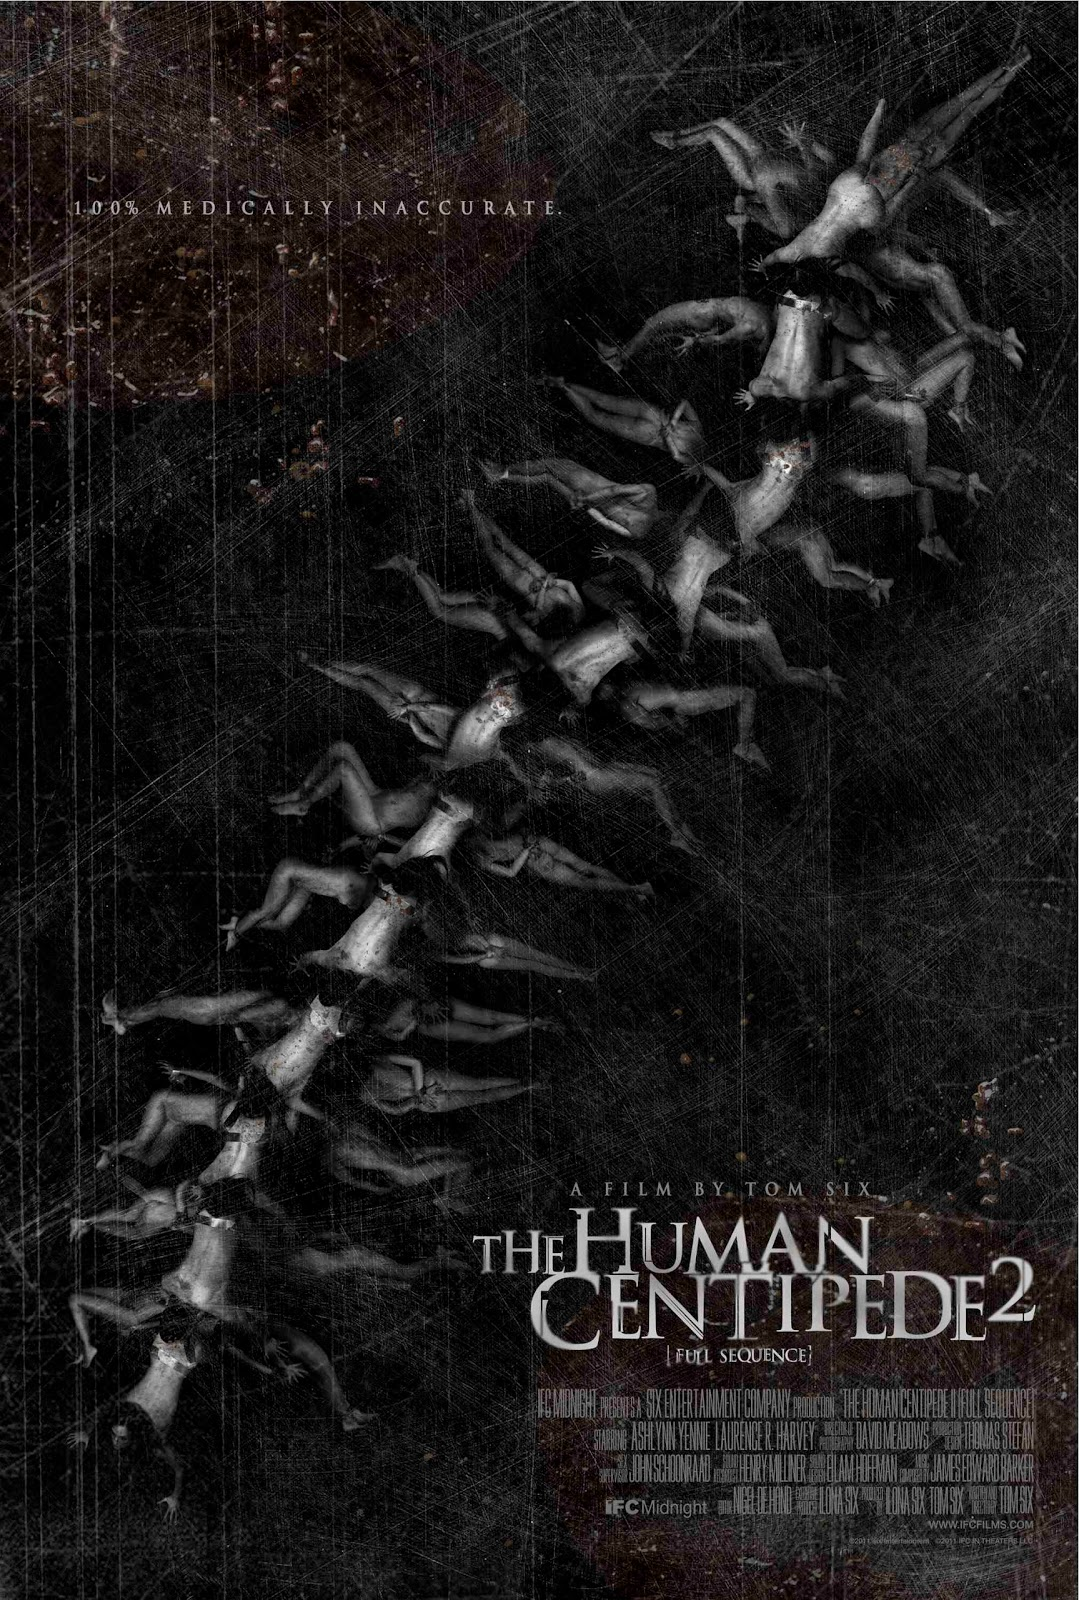 Human centipede movie